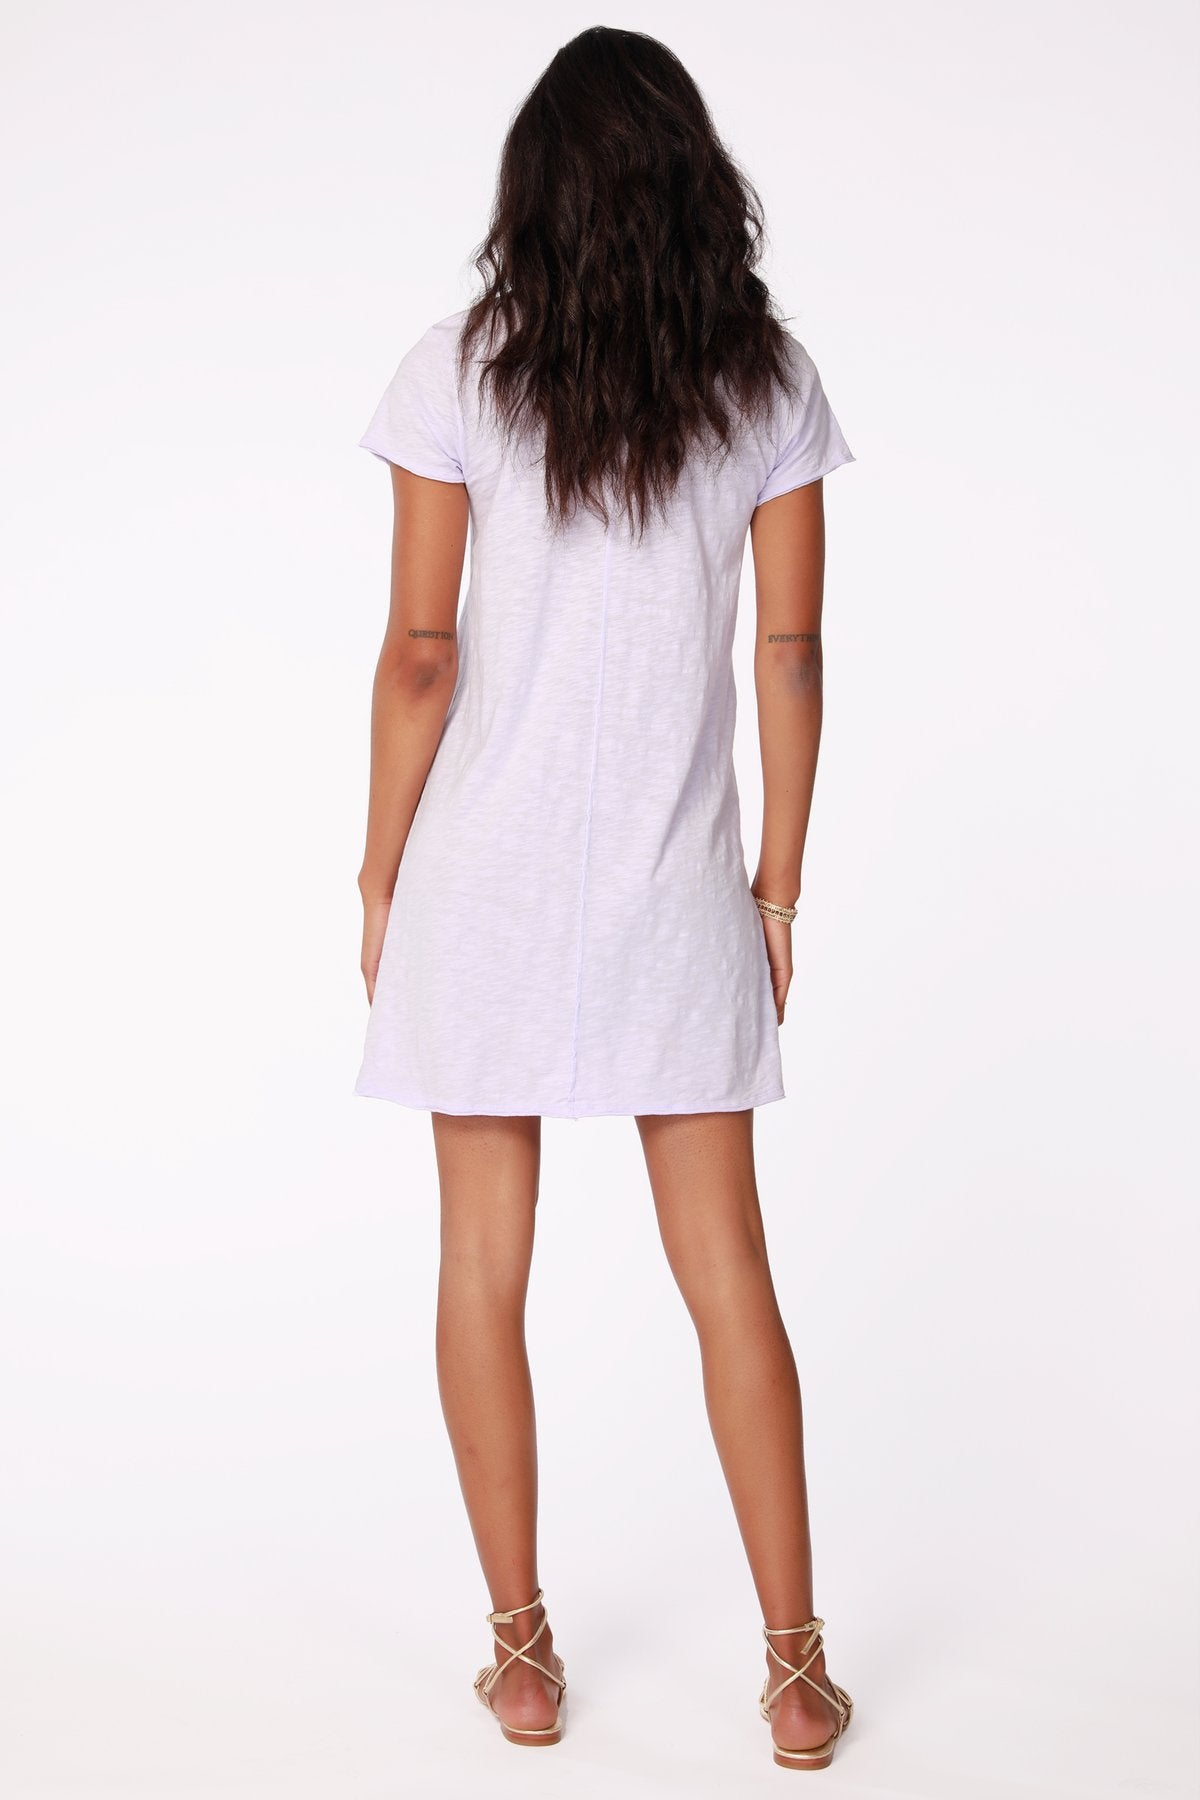 Center Seam T-Shirt Dress - Lilac